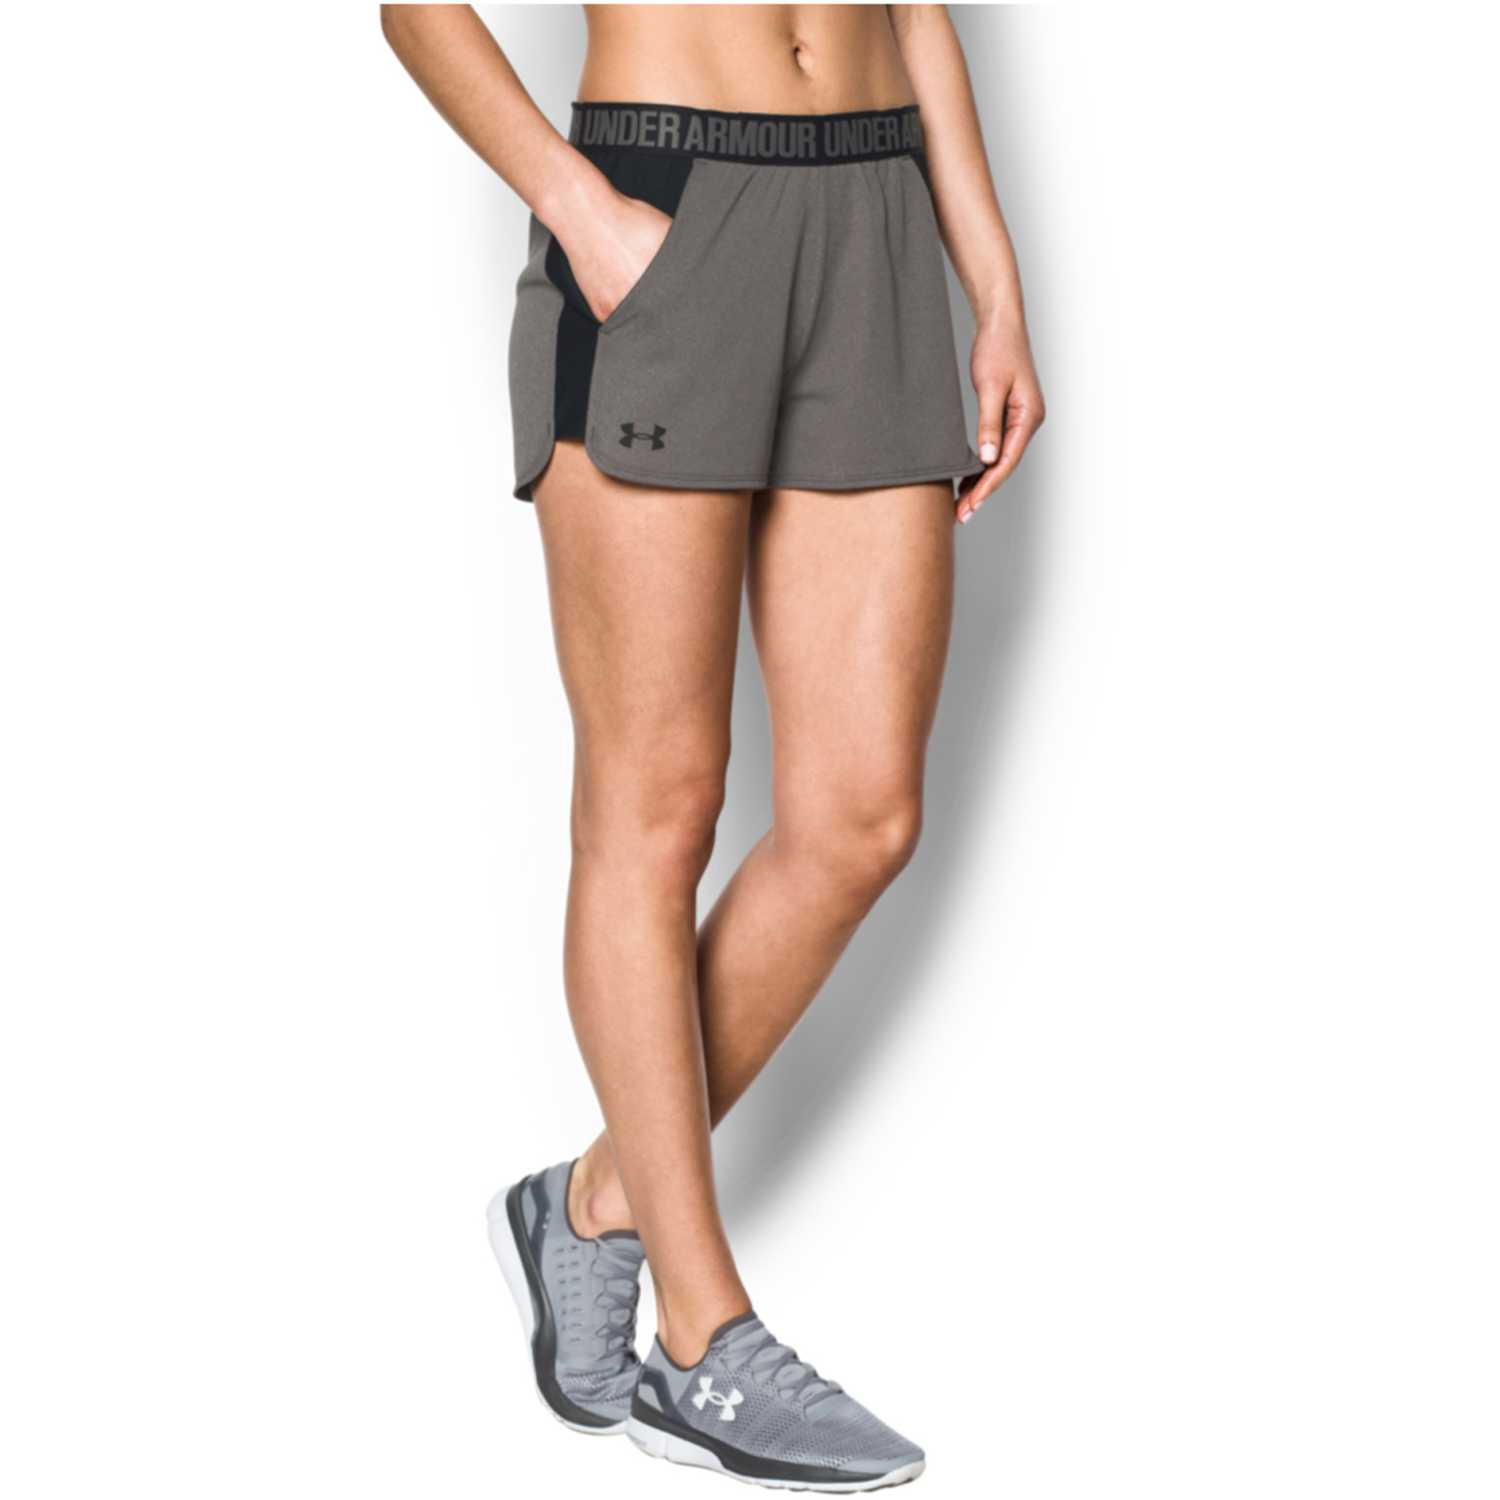 Under Armour new play up short Gris / azul Shorts Deportivos